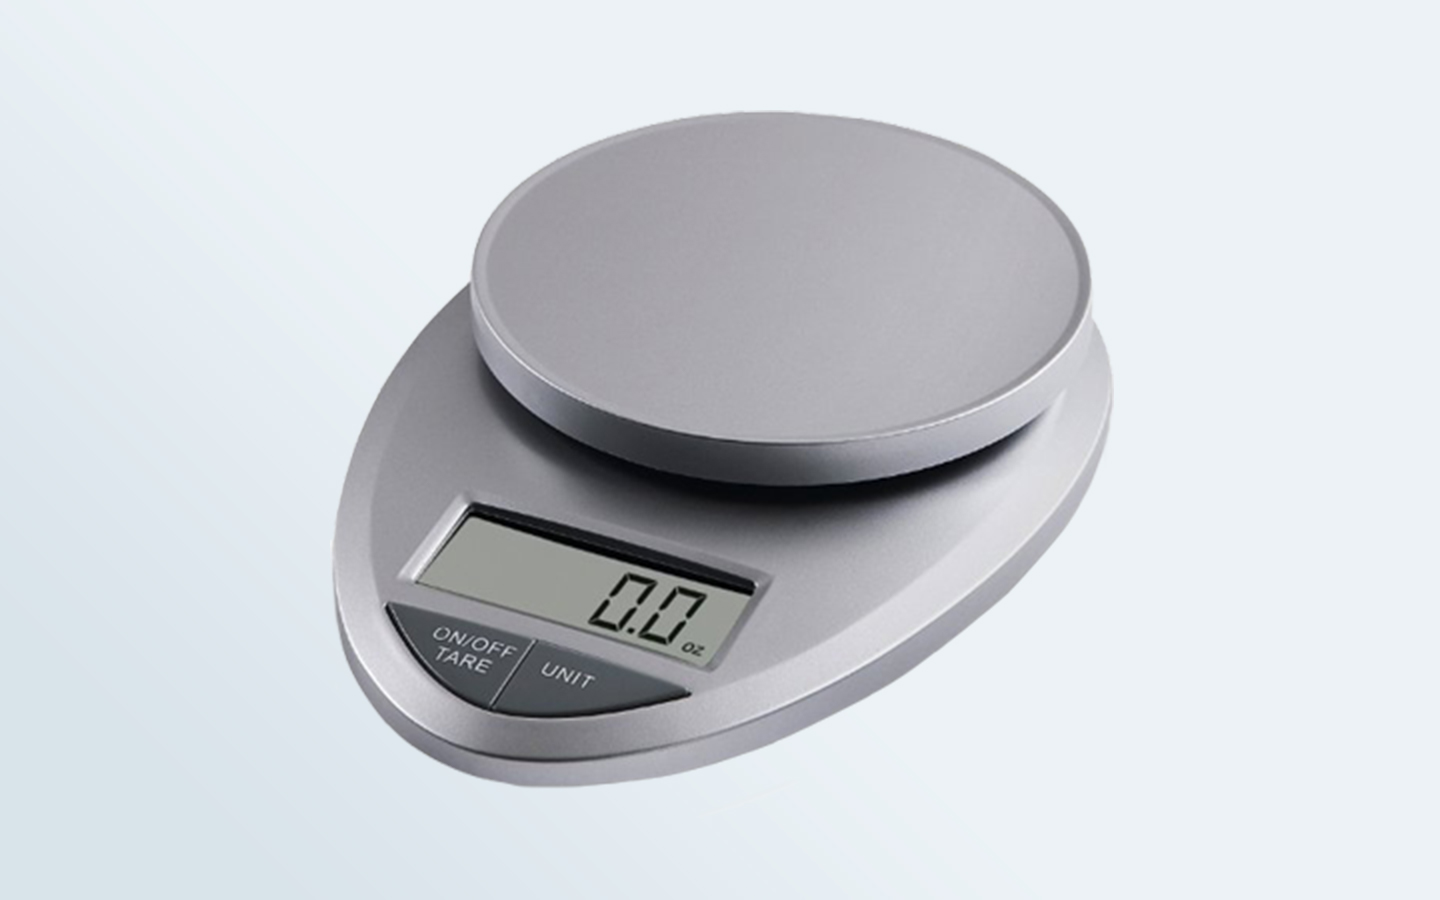 Best Kitchen Scale 2019 - Reviews of Digital Food Scales